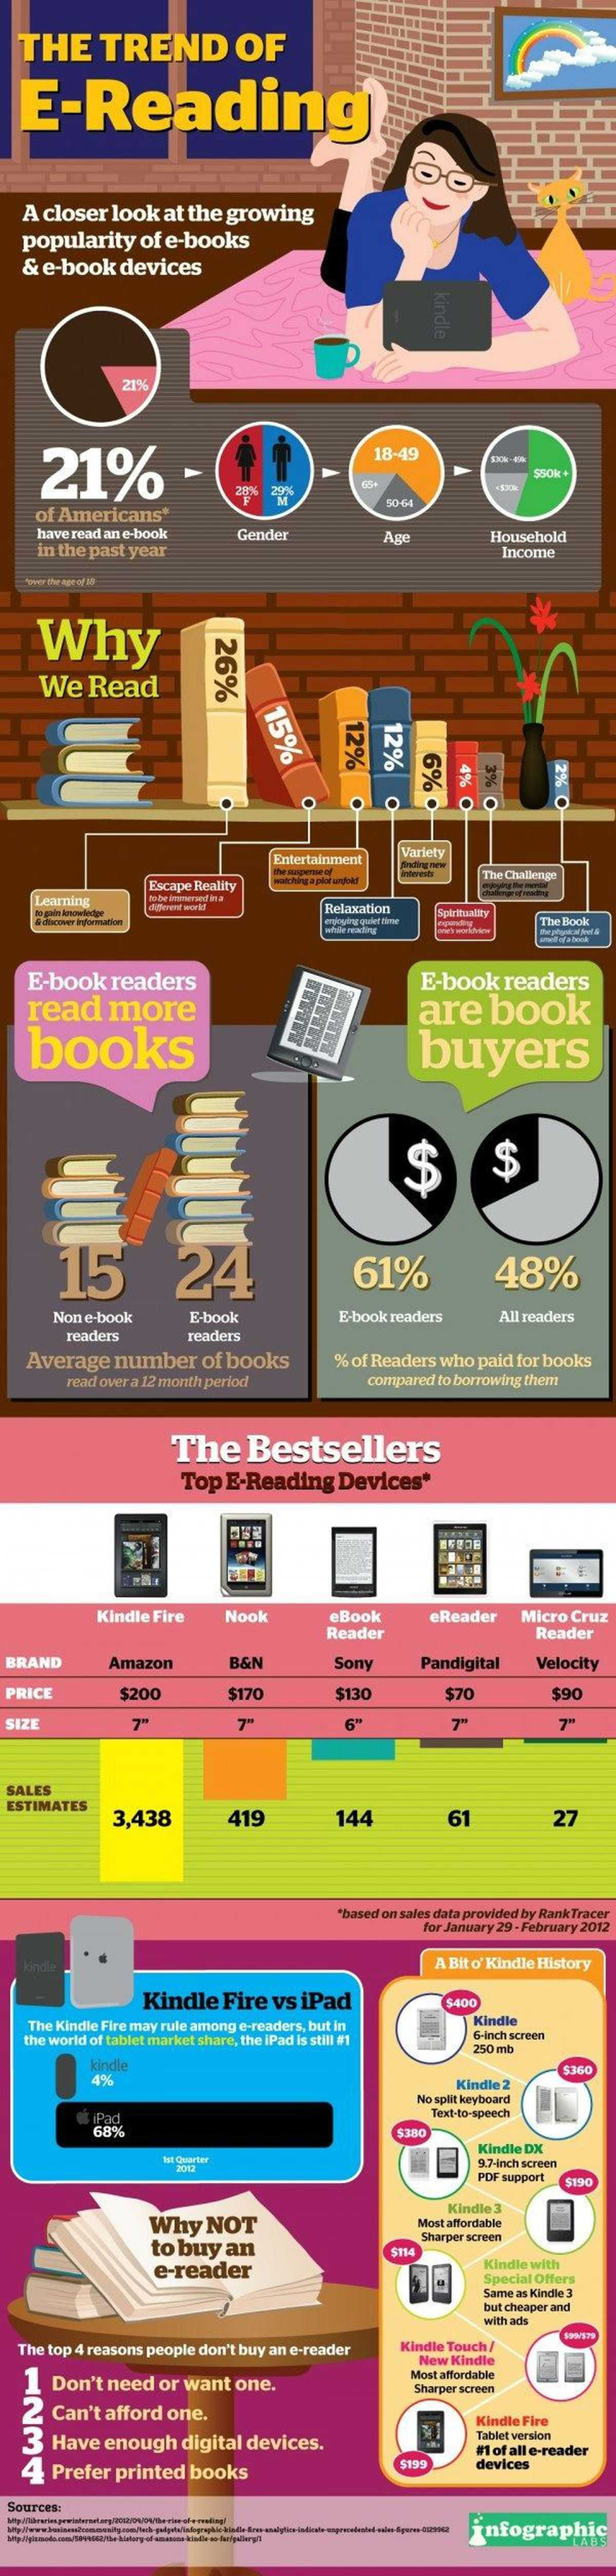 Do E-Reader Owners Read More Books